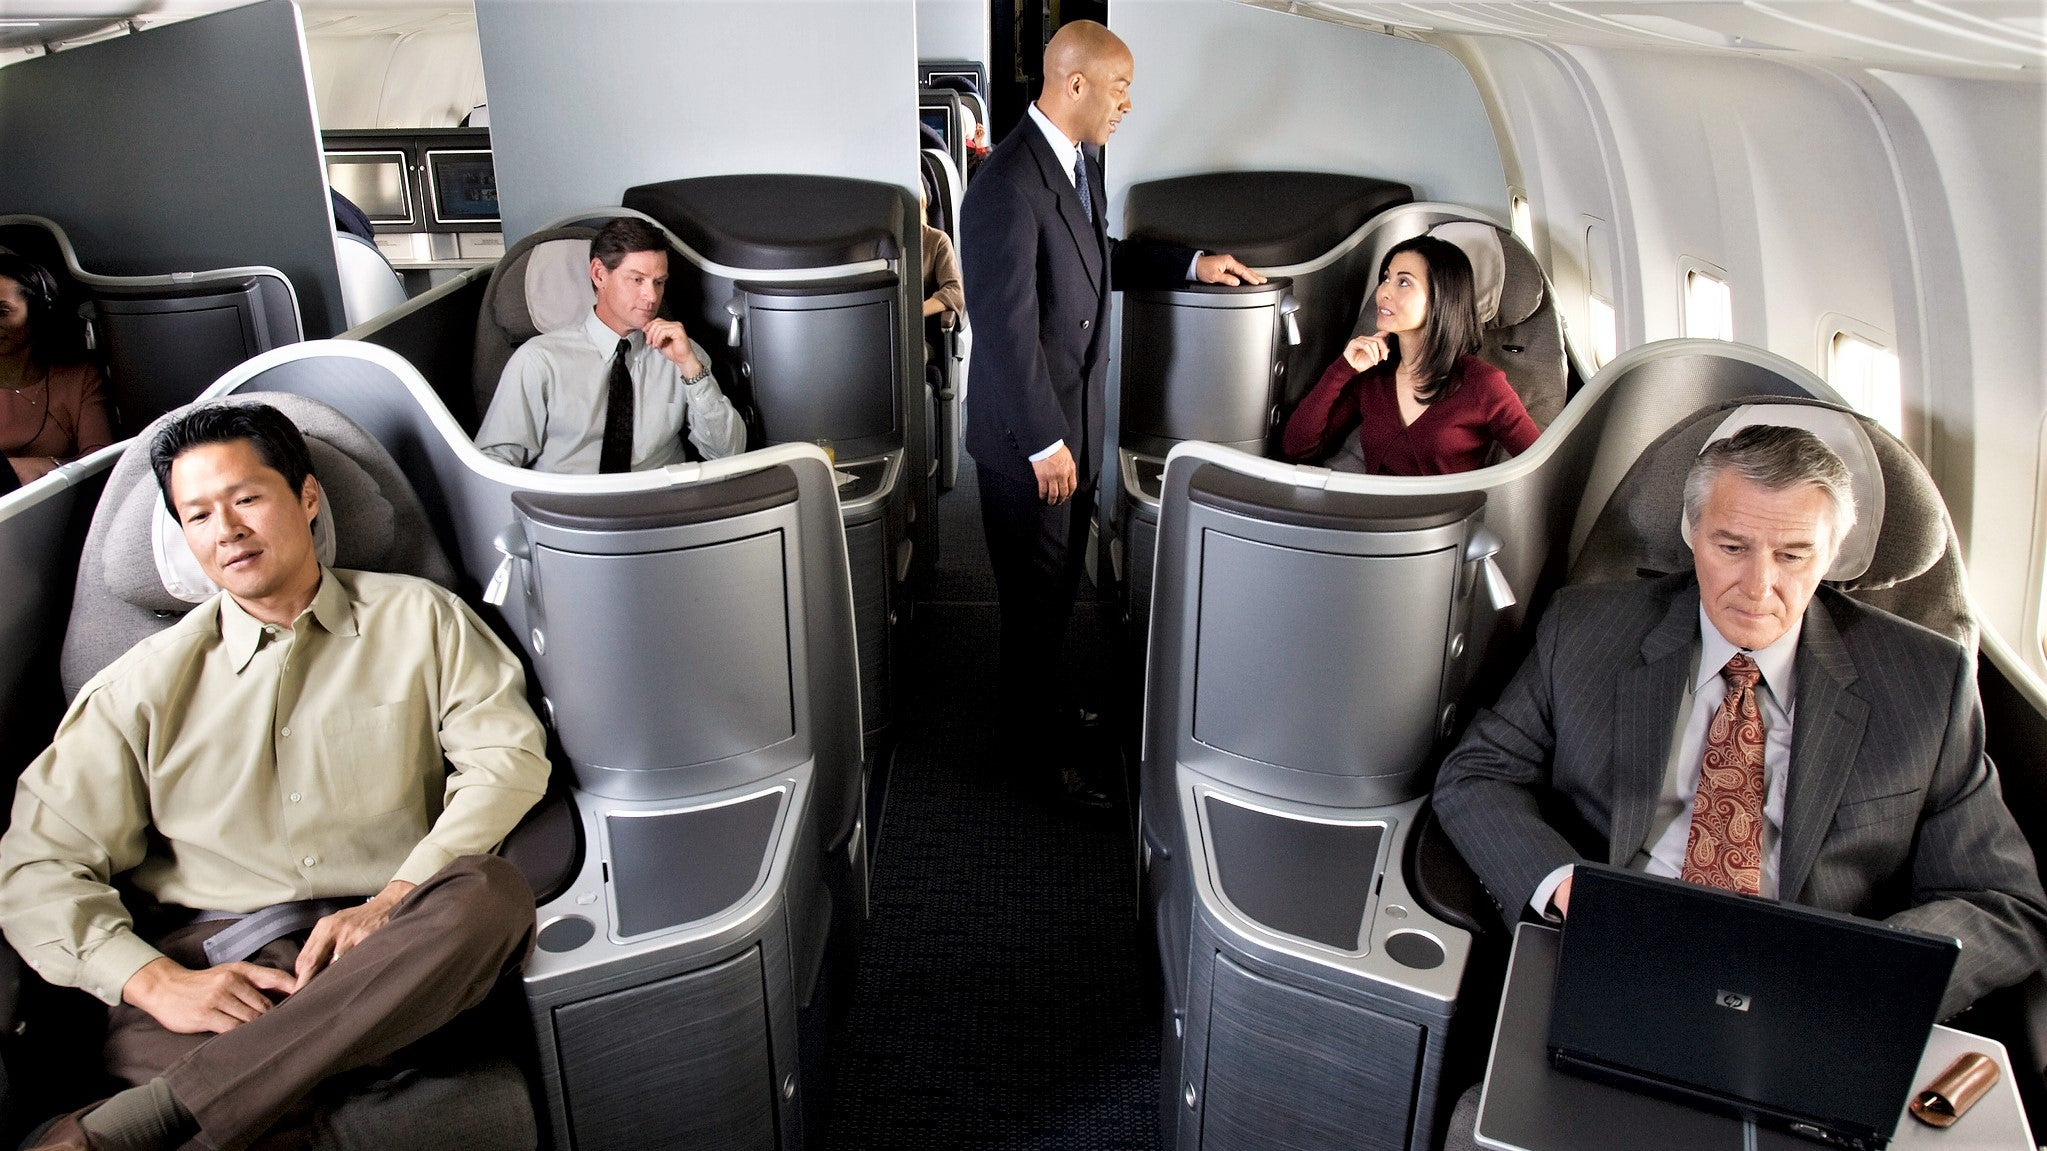 Why Dressing Nicely For A Flight Is Worth The Effort